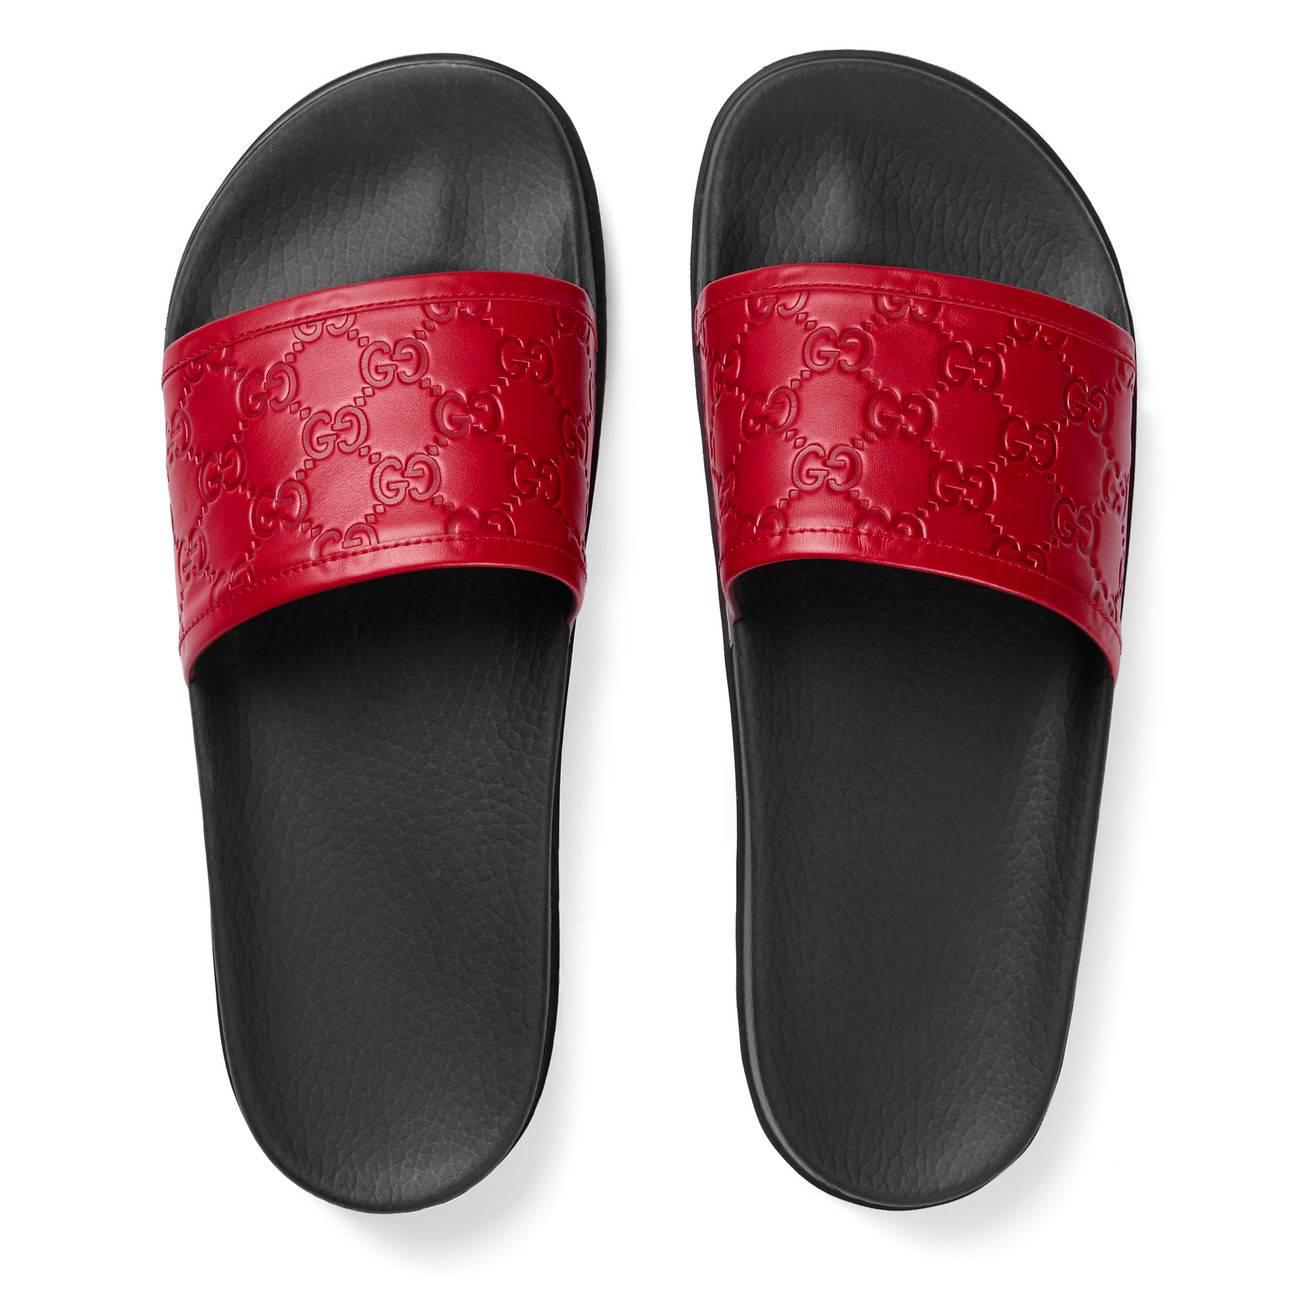 1794eaa111fe Lyst - Gucci Signature Slide Sandal in Red for Men - Save ...